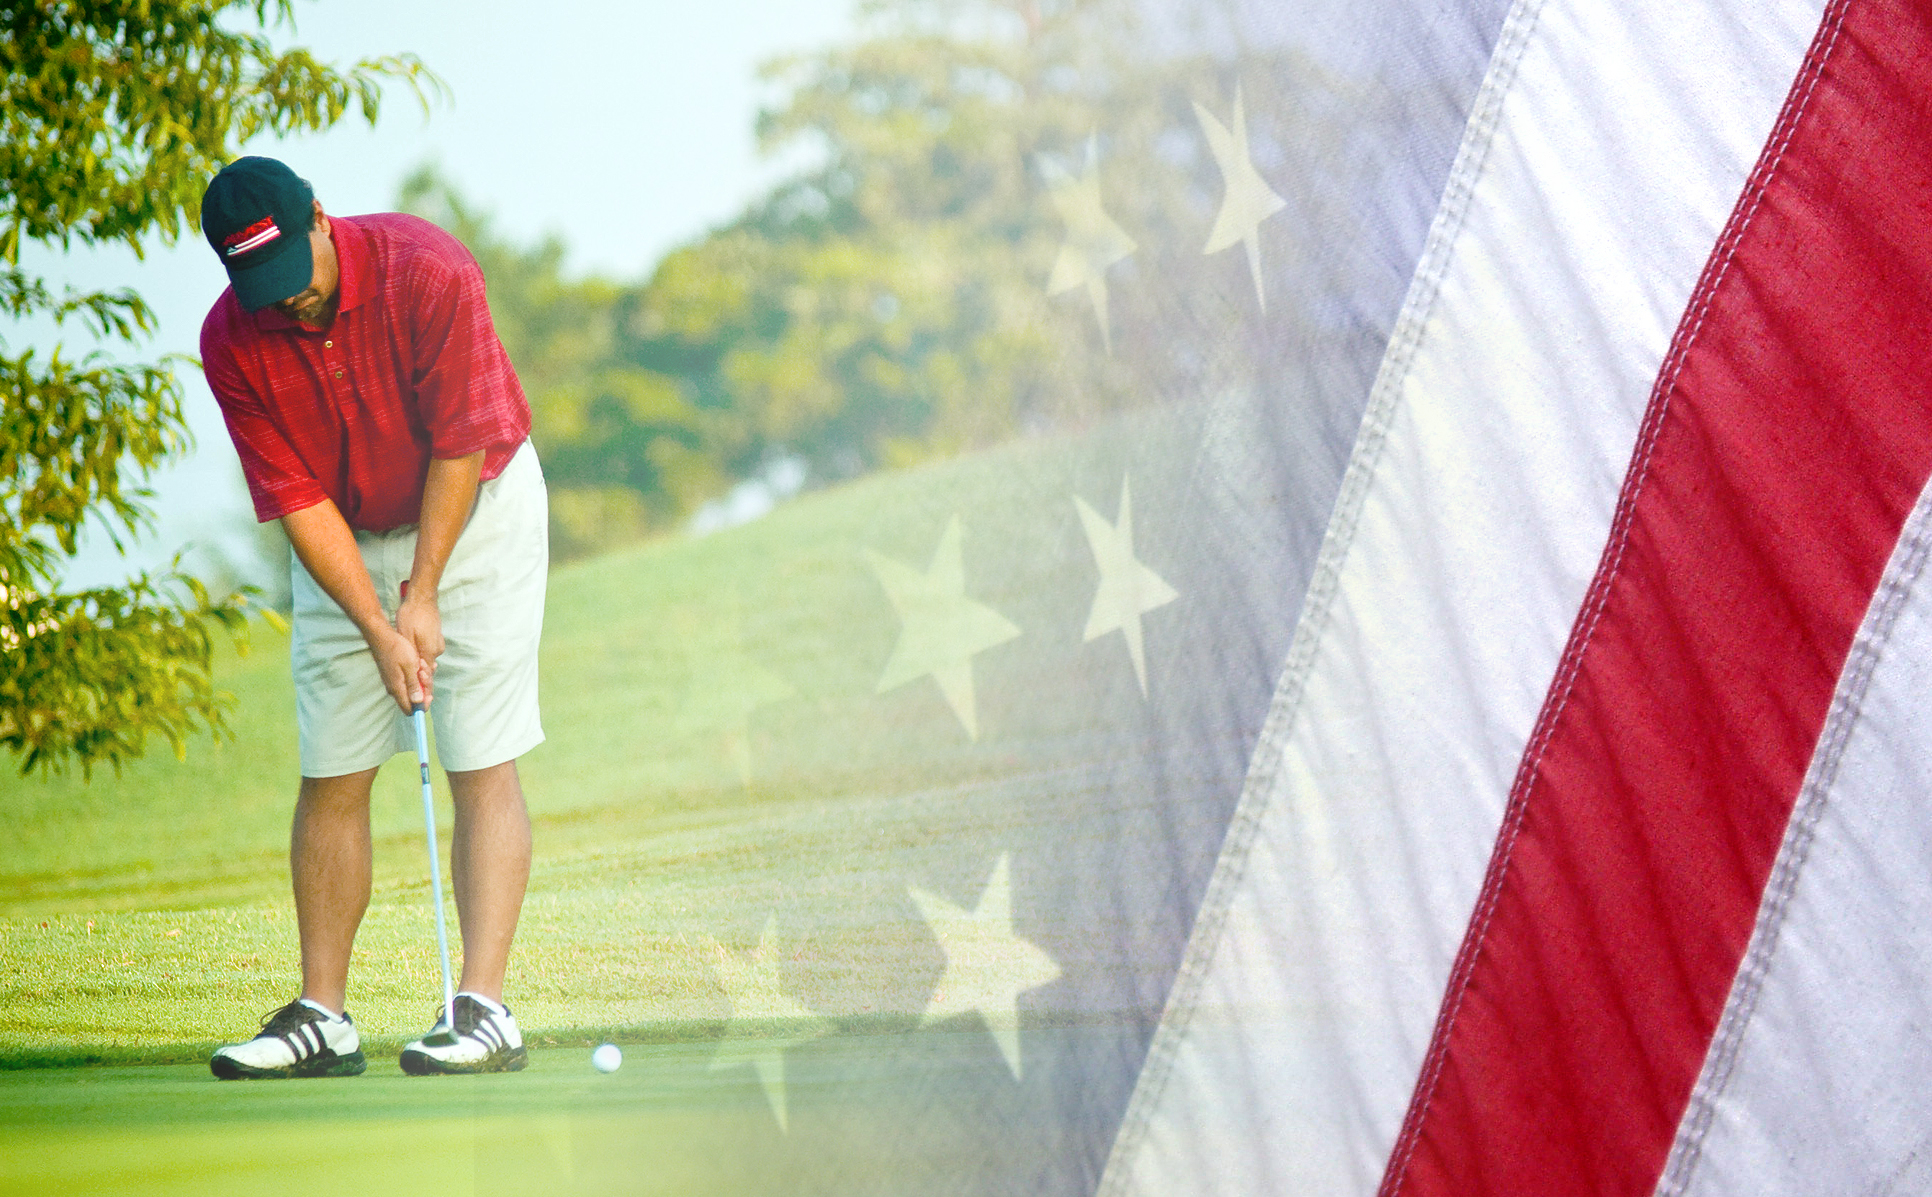 Spirit Golf Launches Red Shirt Fridays at Clubs on July 1 to Benefit Folds of Honor